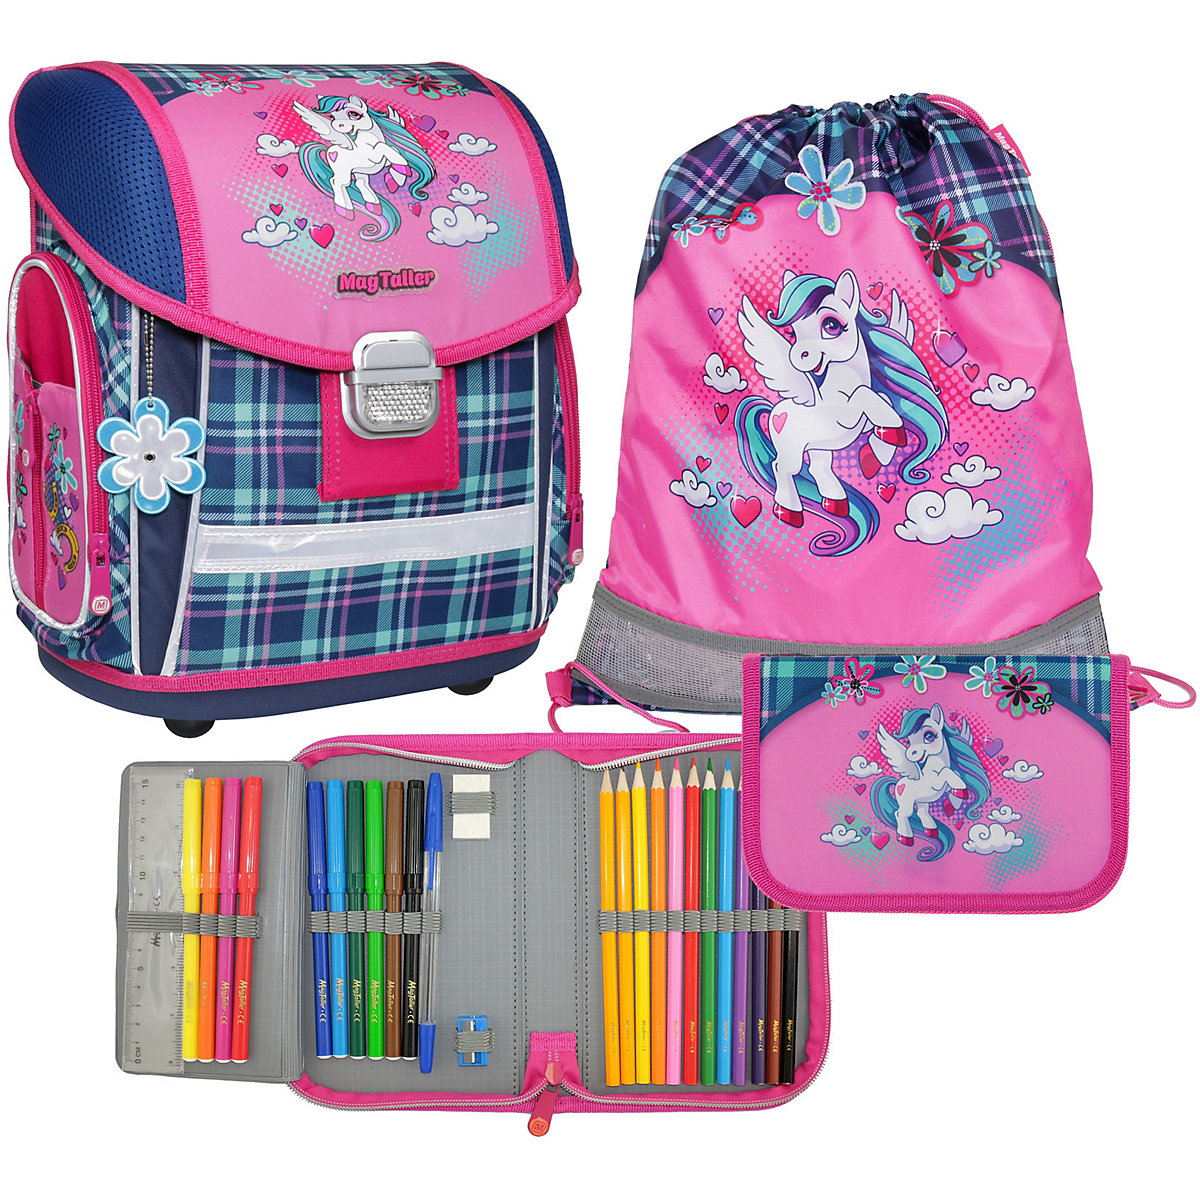 School Bags MAGTALLER 11154938 schoolbag backpack knapsacks orthopedic bag for boy and girl animals flower sprints school bags magtaller 11154976 schoolbag backpack knapsacks orthopedic bag for boy and girl animals flower sprints